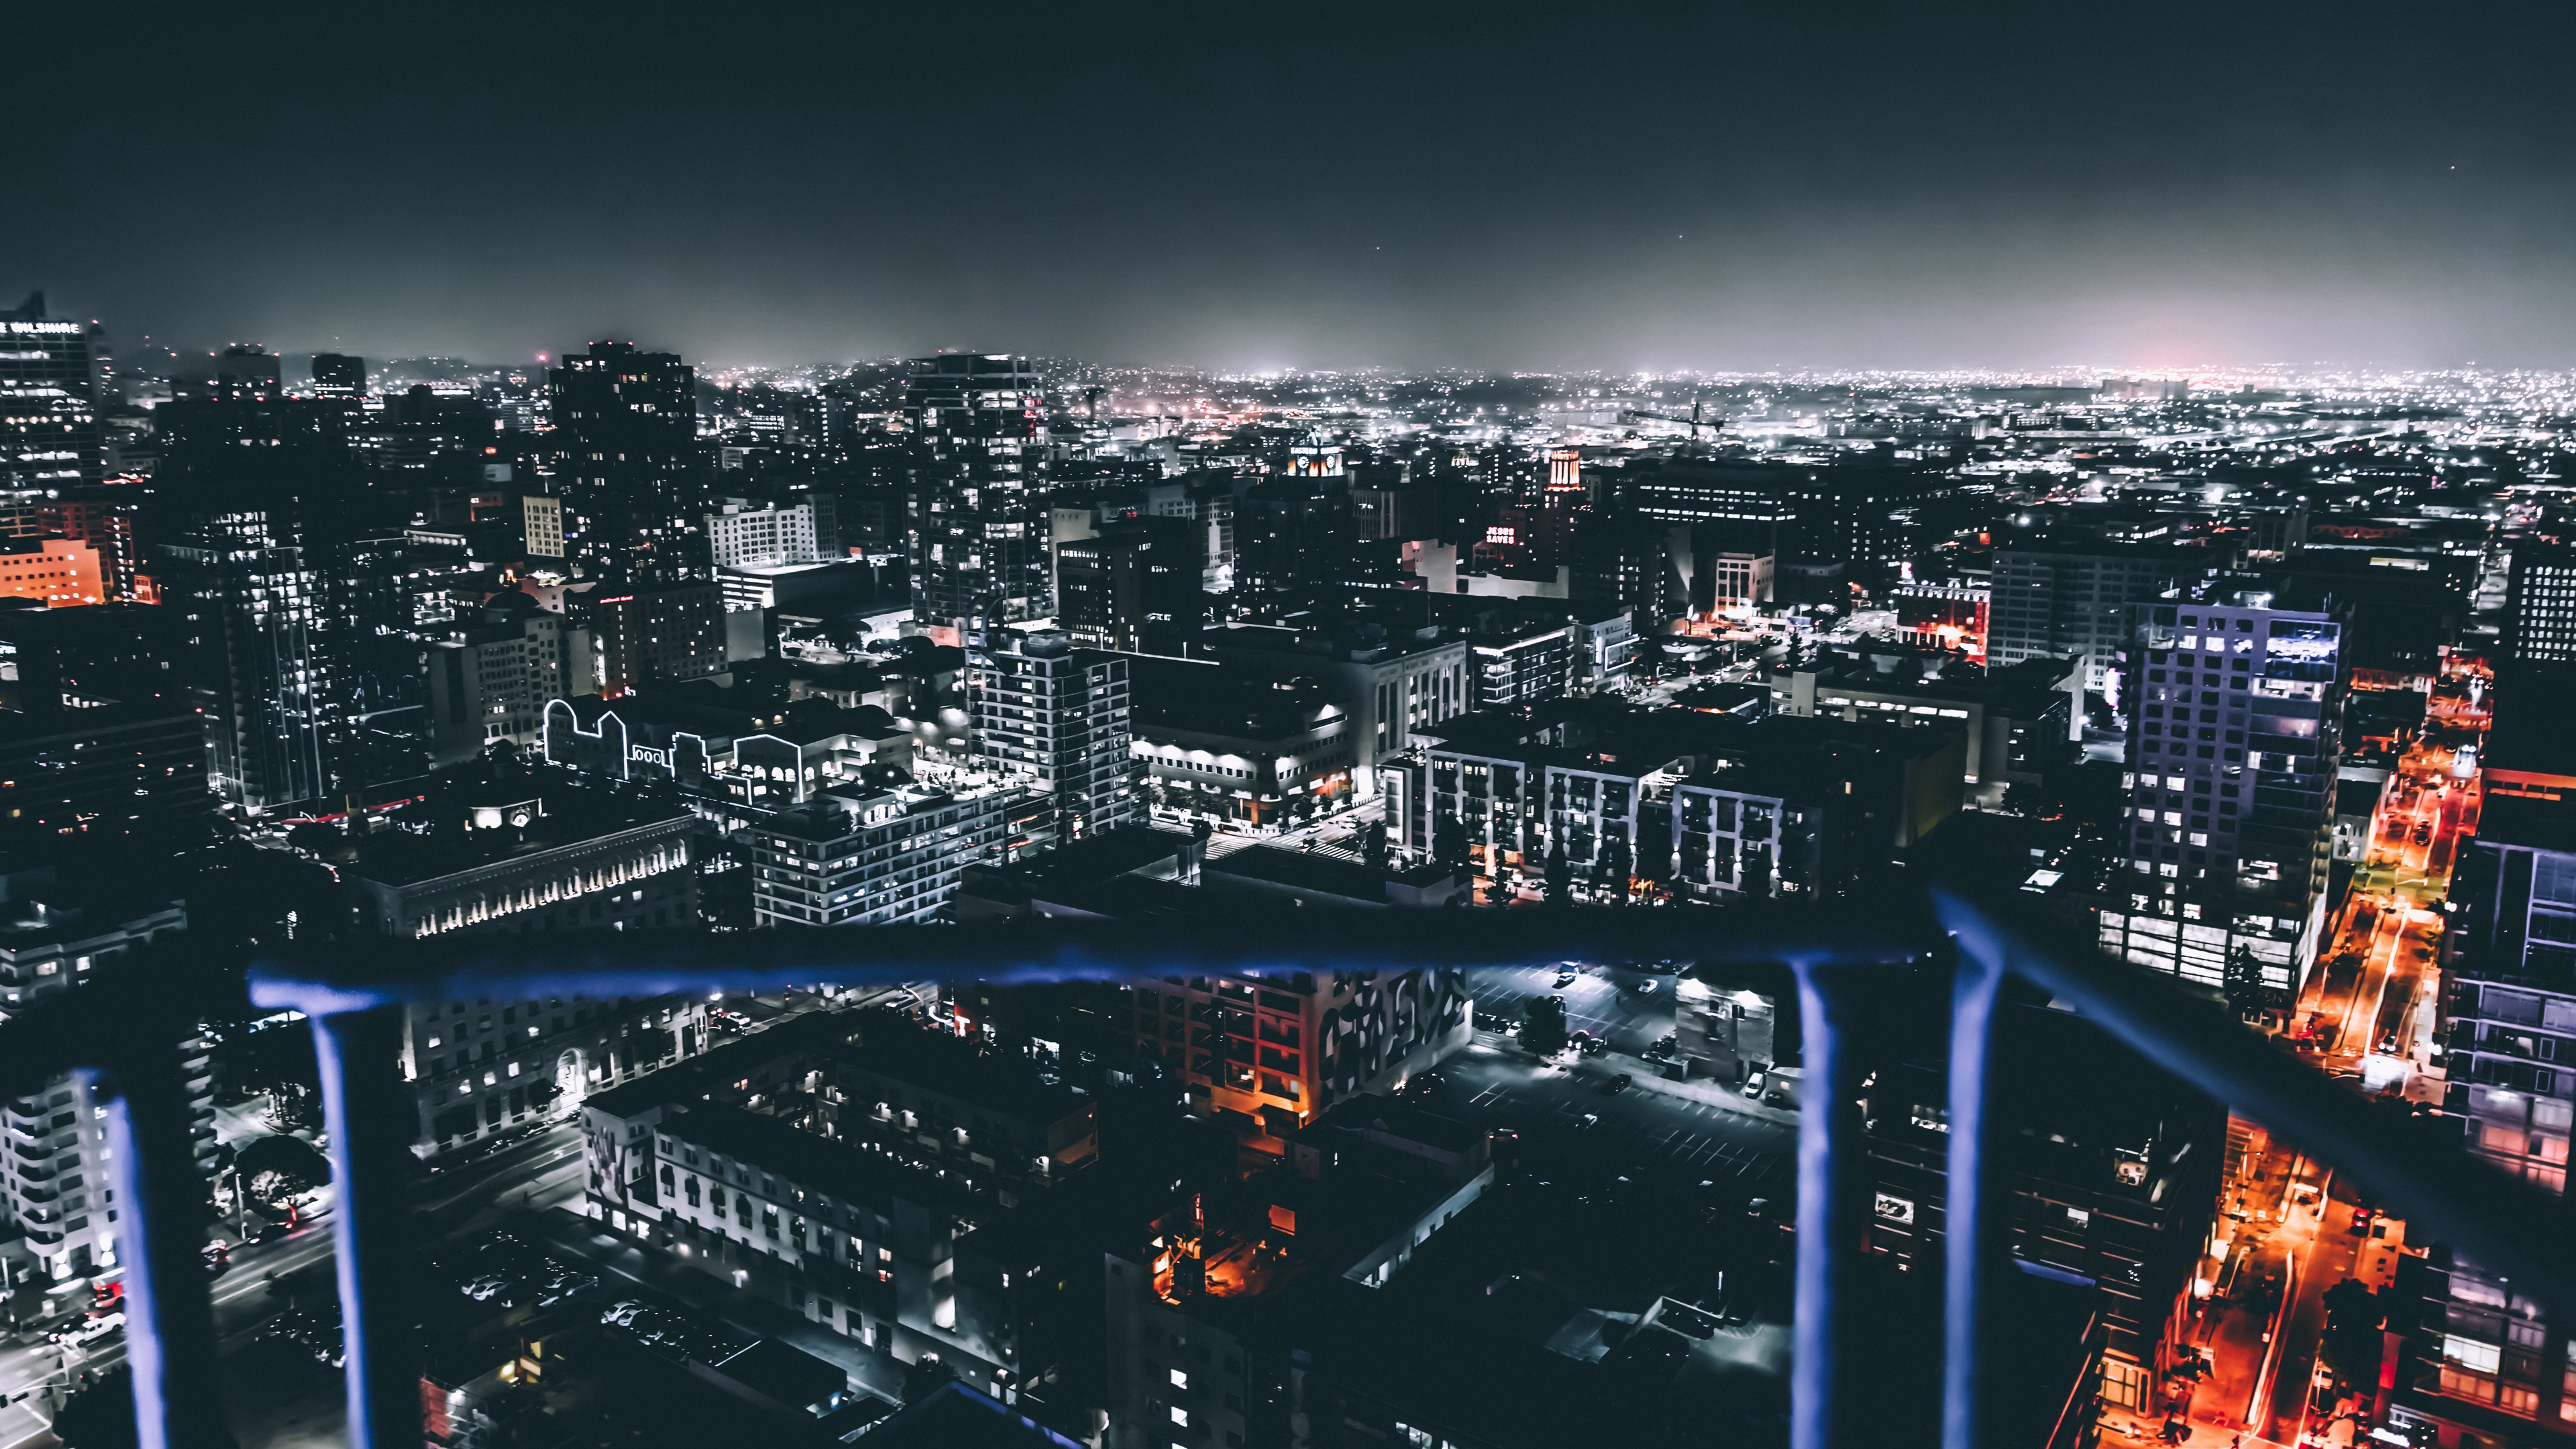 los angeles united states night city buildings 4k 1538067926 - los angeles, united states, night city, buildings 4k - united states, night city, los angeles